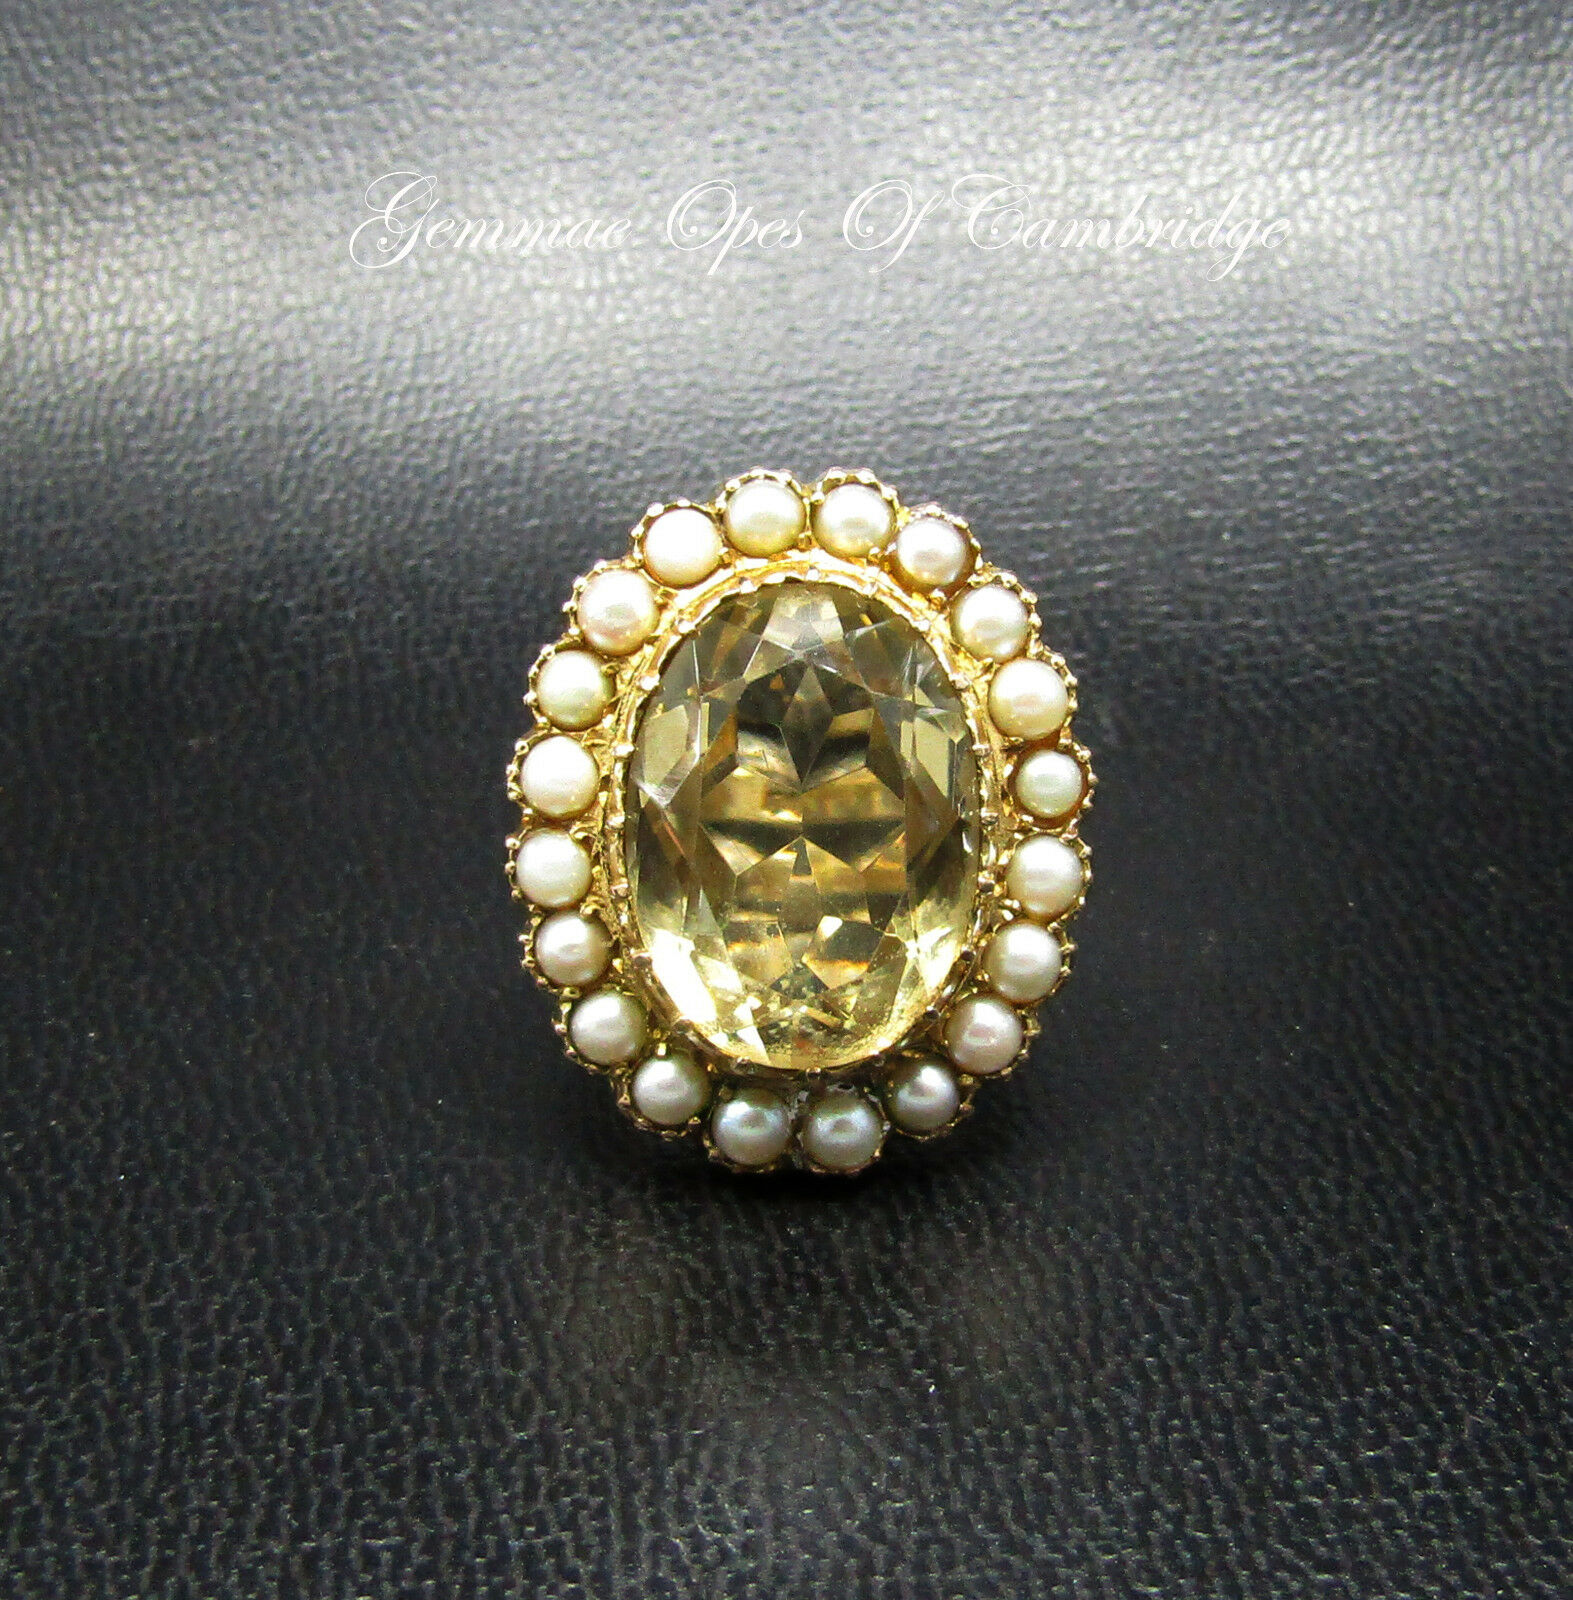 9K 9ct gold Large Vintage Citrine and Seed Pearl Cluster Ring Size O 9g 12cts